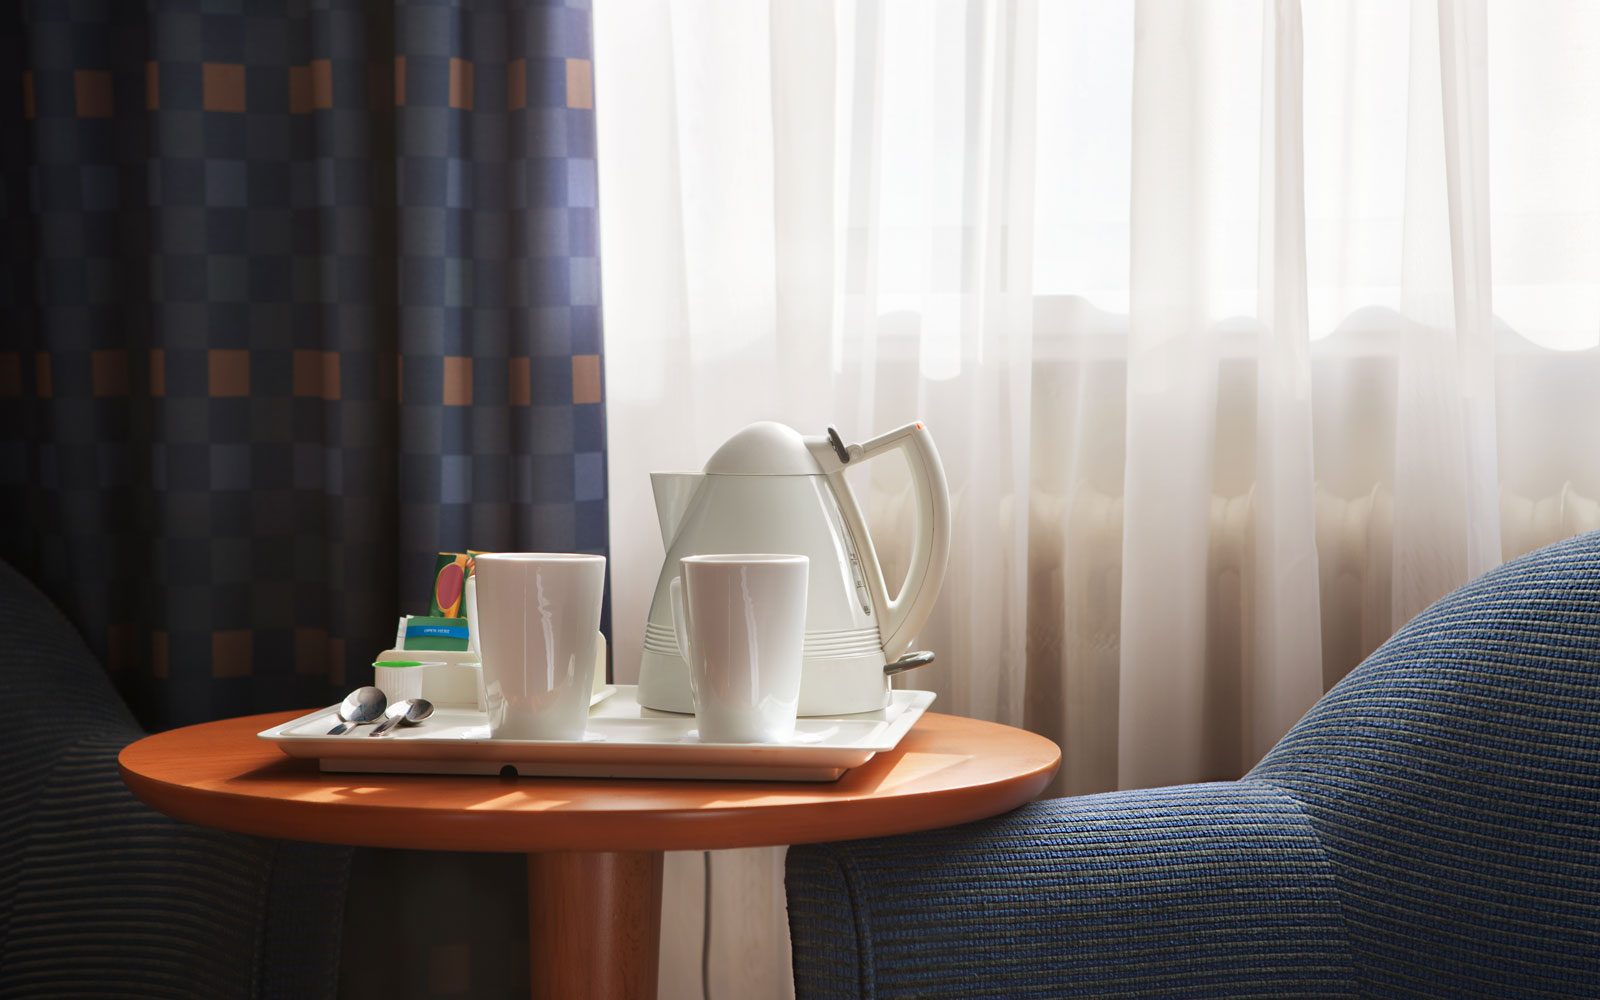 hotel room kettle